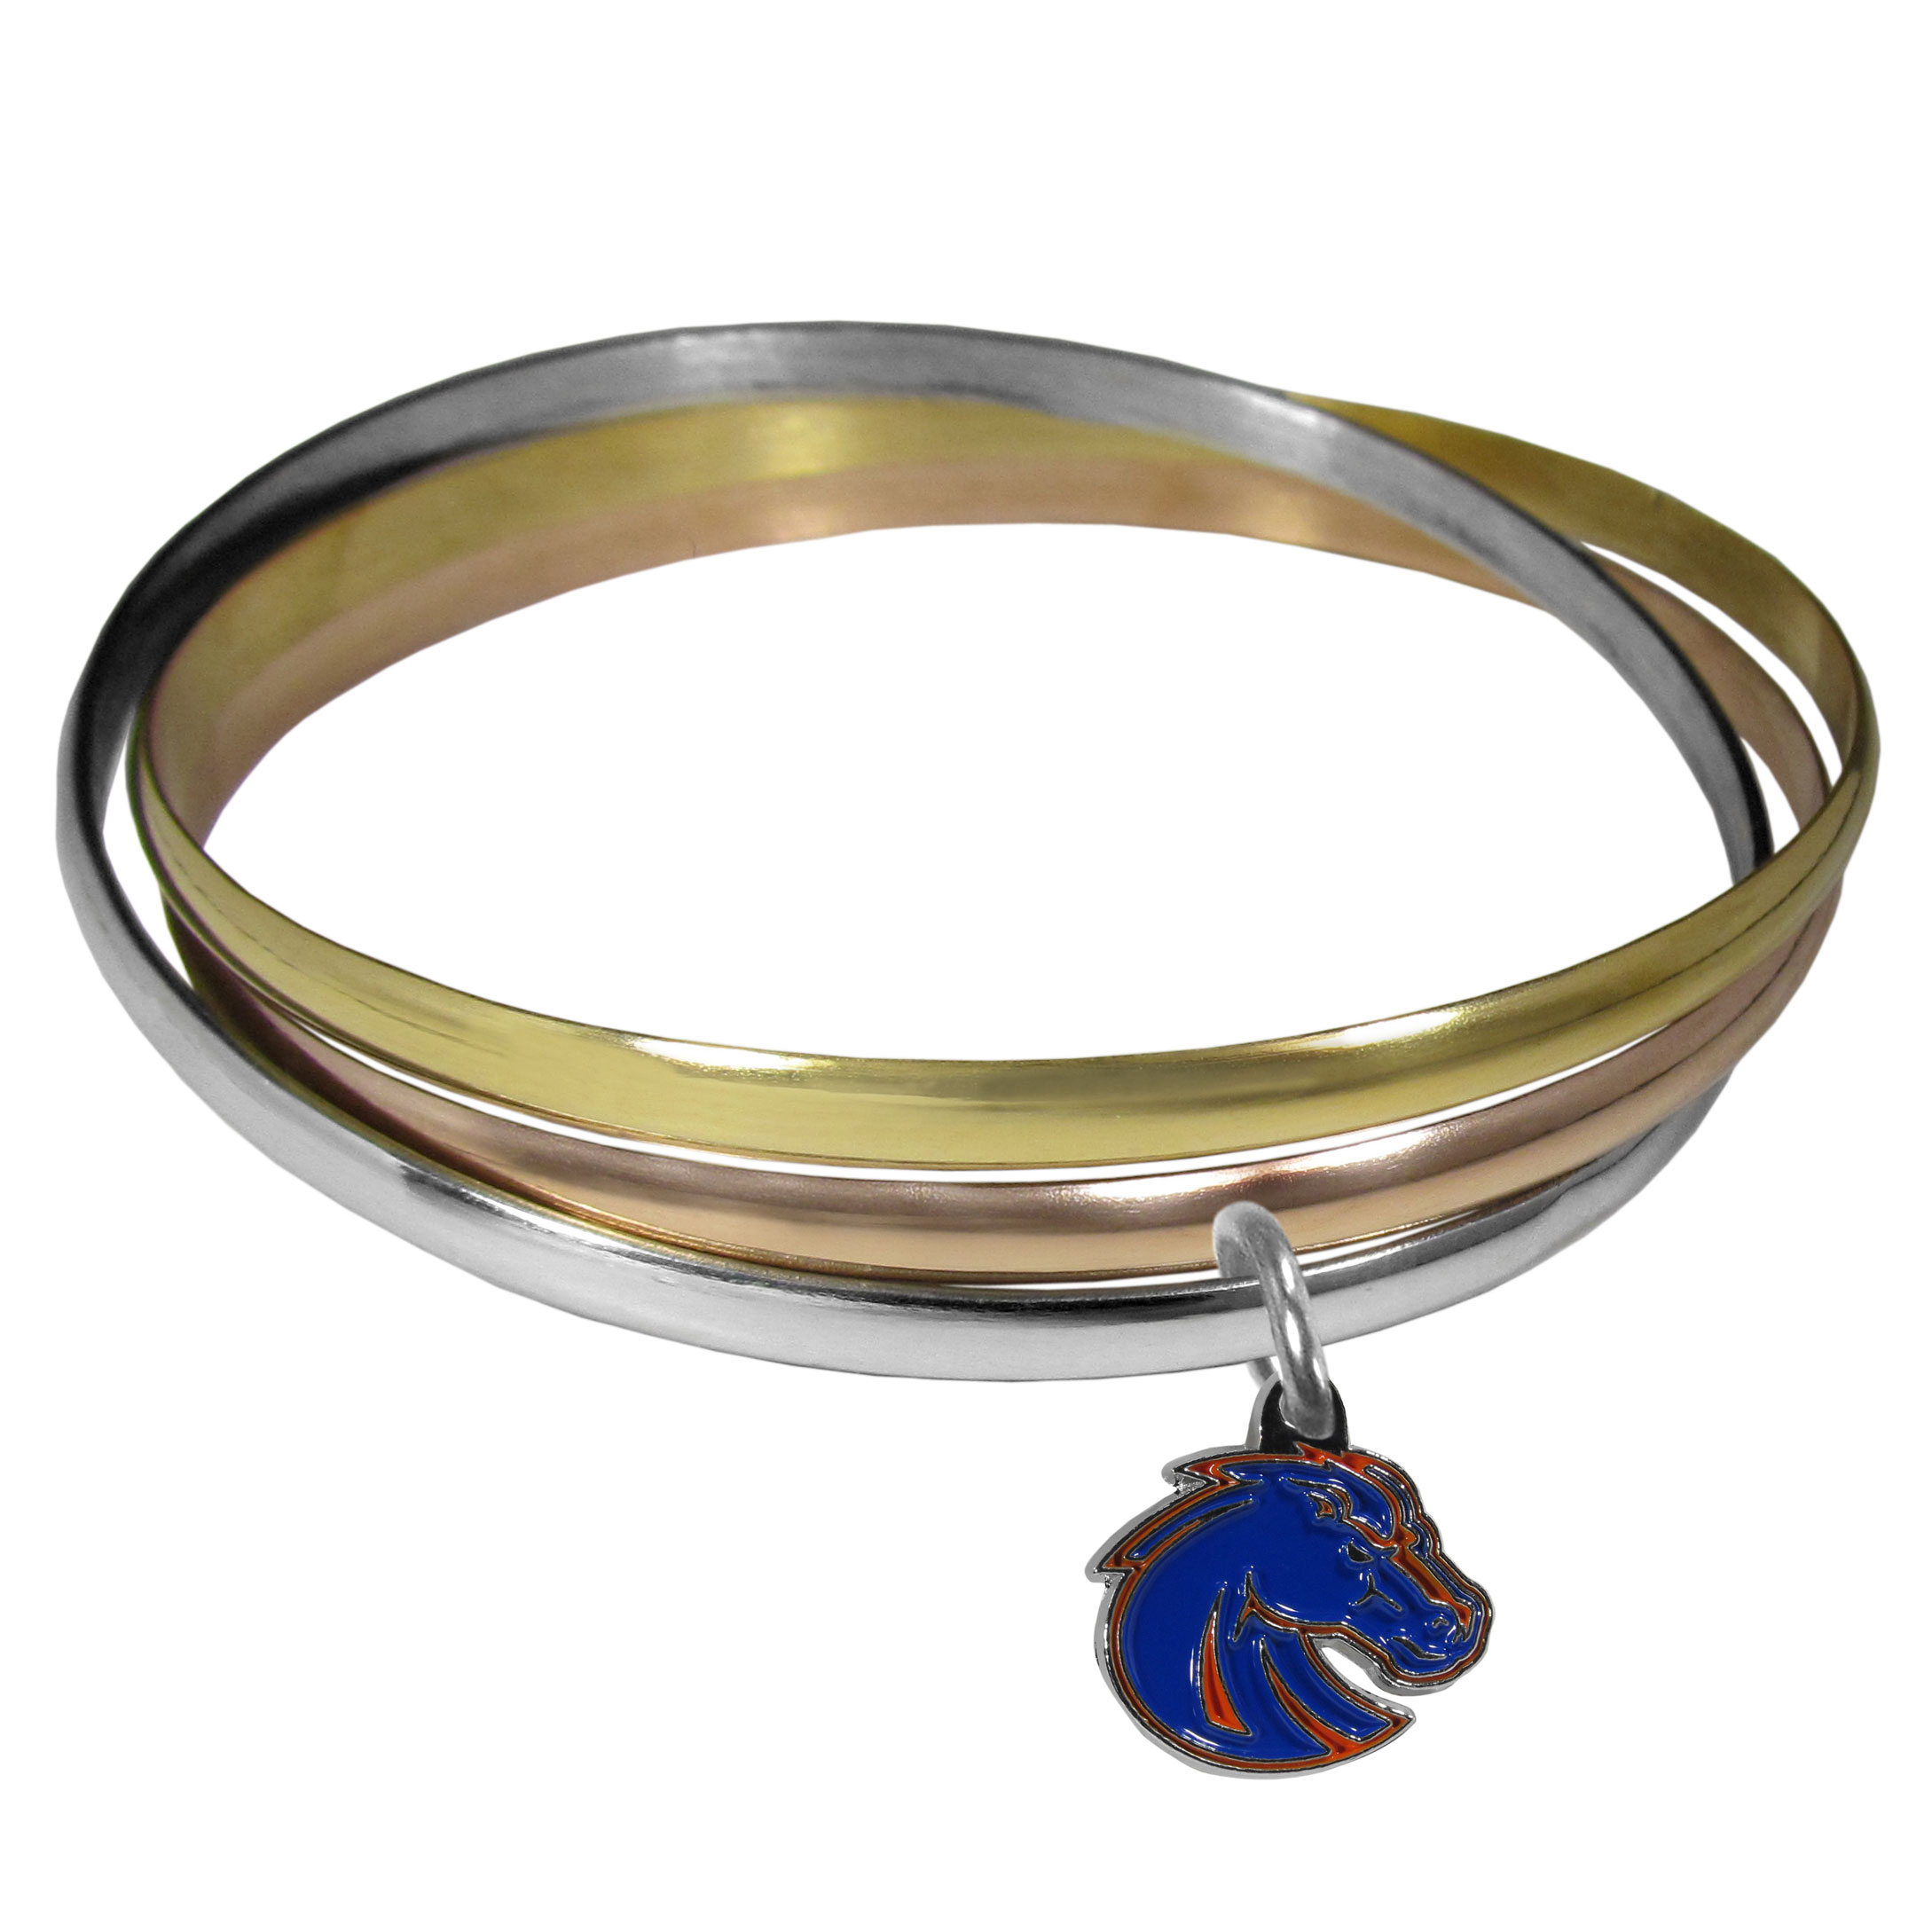 Boise St. Broncos Tri-color Bangle Bracelet - These beautiful bangles come in a interlocking style and feature a fully cast Boise St. Broncos charm with enameled team colors. The bracelet has a silver toned bangle, gold tone bangle and brass toned bangle.